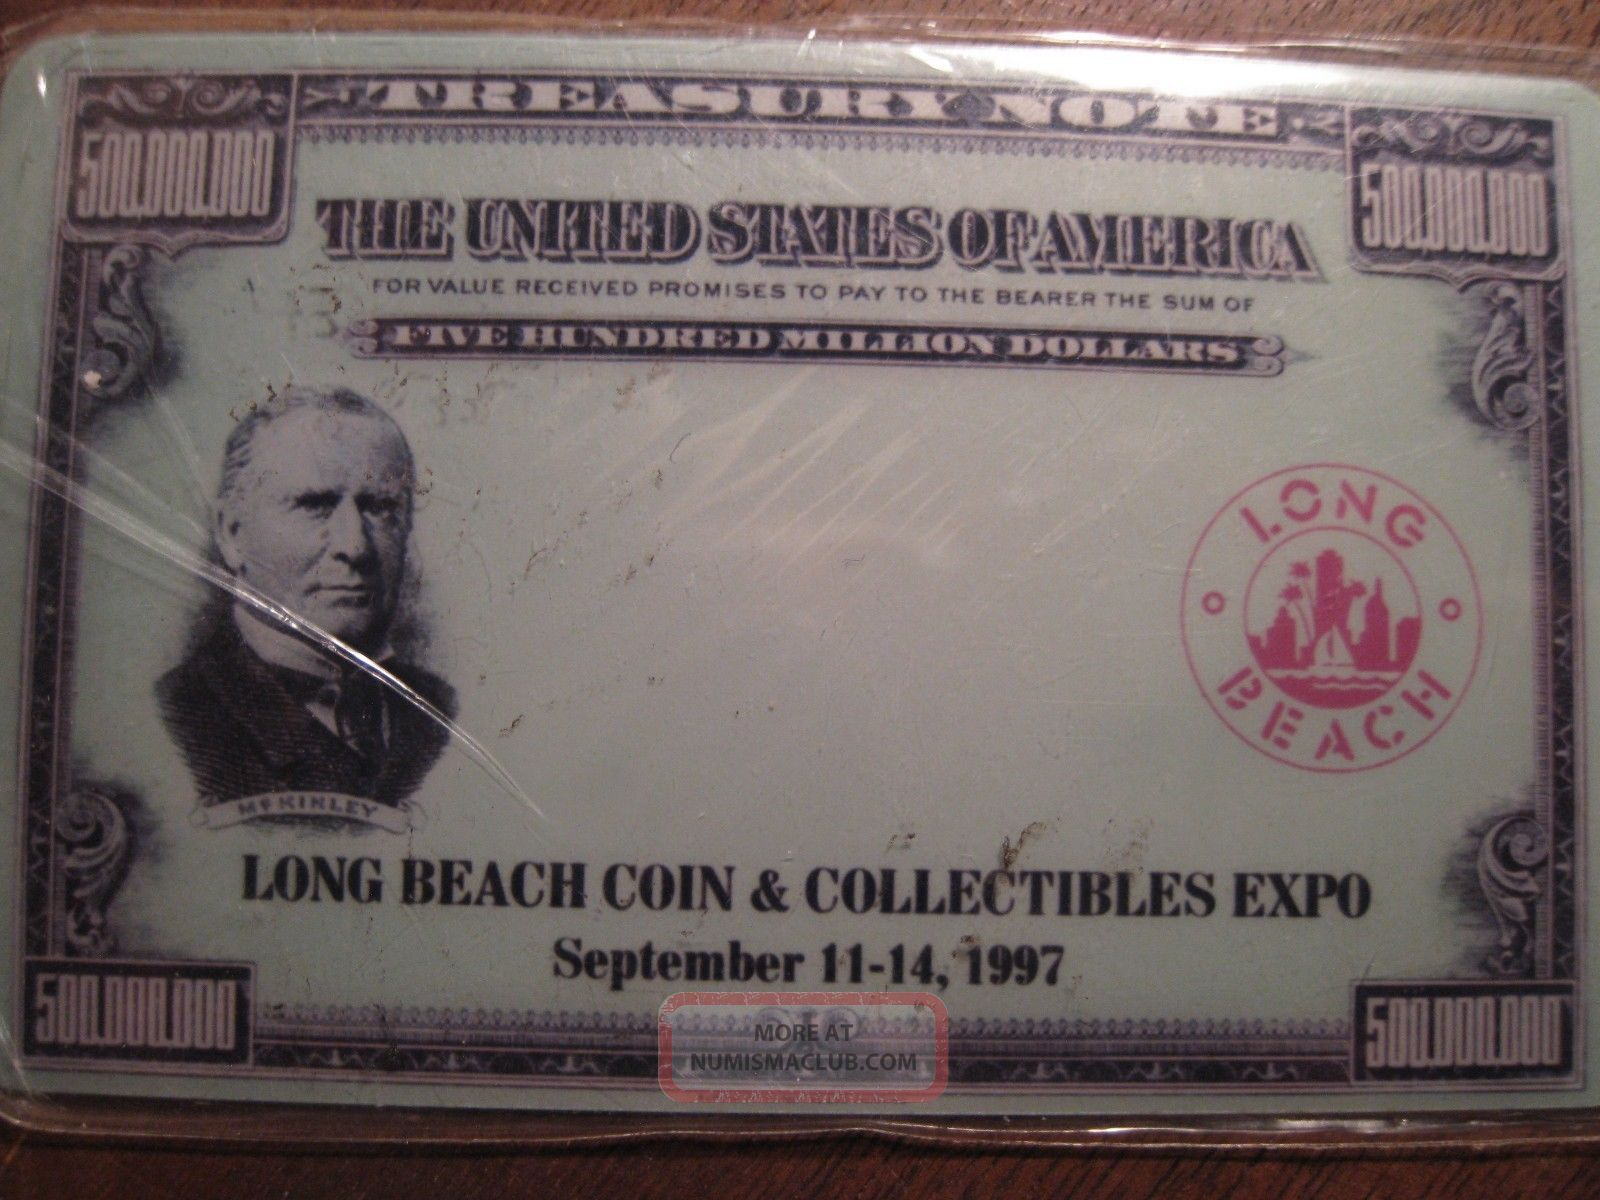 $500,  000,  000 Treasury Note Collectible Phone Card From Long Beach Coin Expo Paper Money: US photo